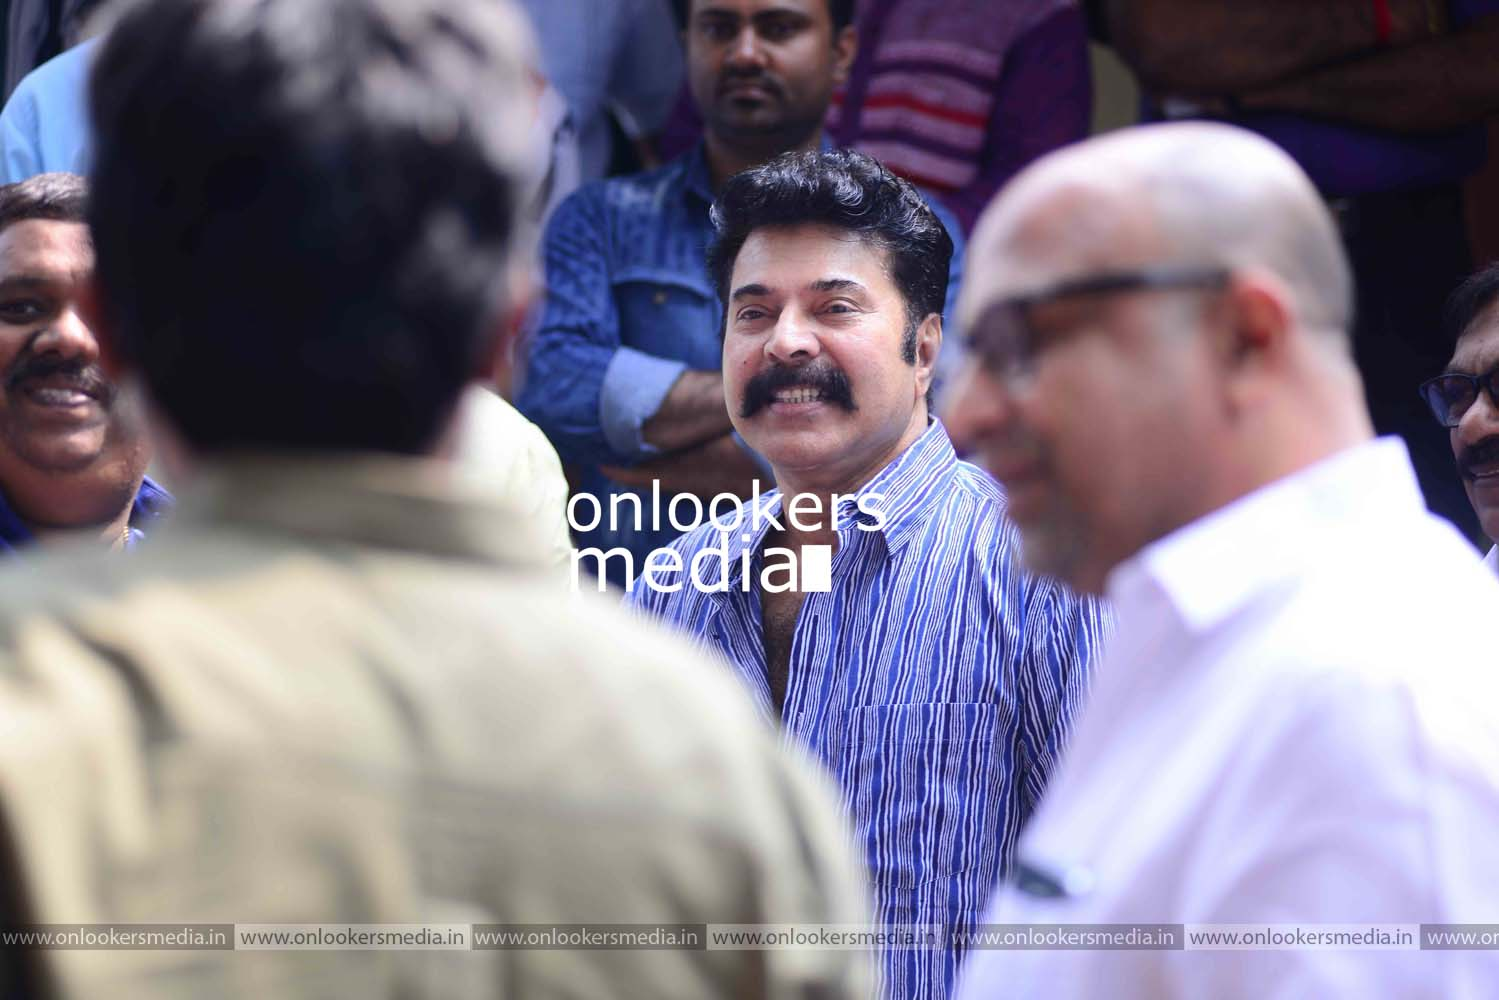 http://onlookersmedia.in/wp-content/uploads/2016/11/Puthan-Panam-Pooja-Stills-Photos-Mammootty-Ranjith-7.jpg